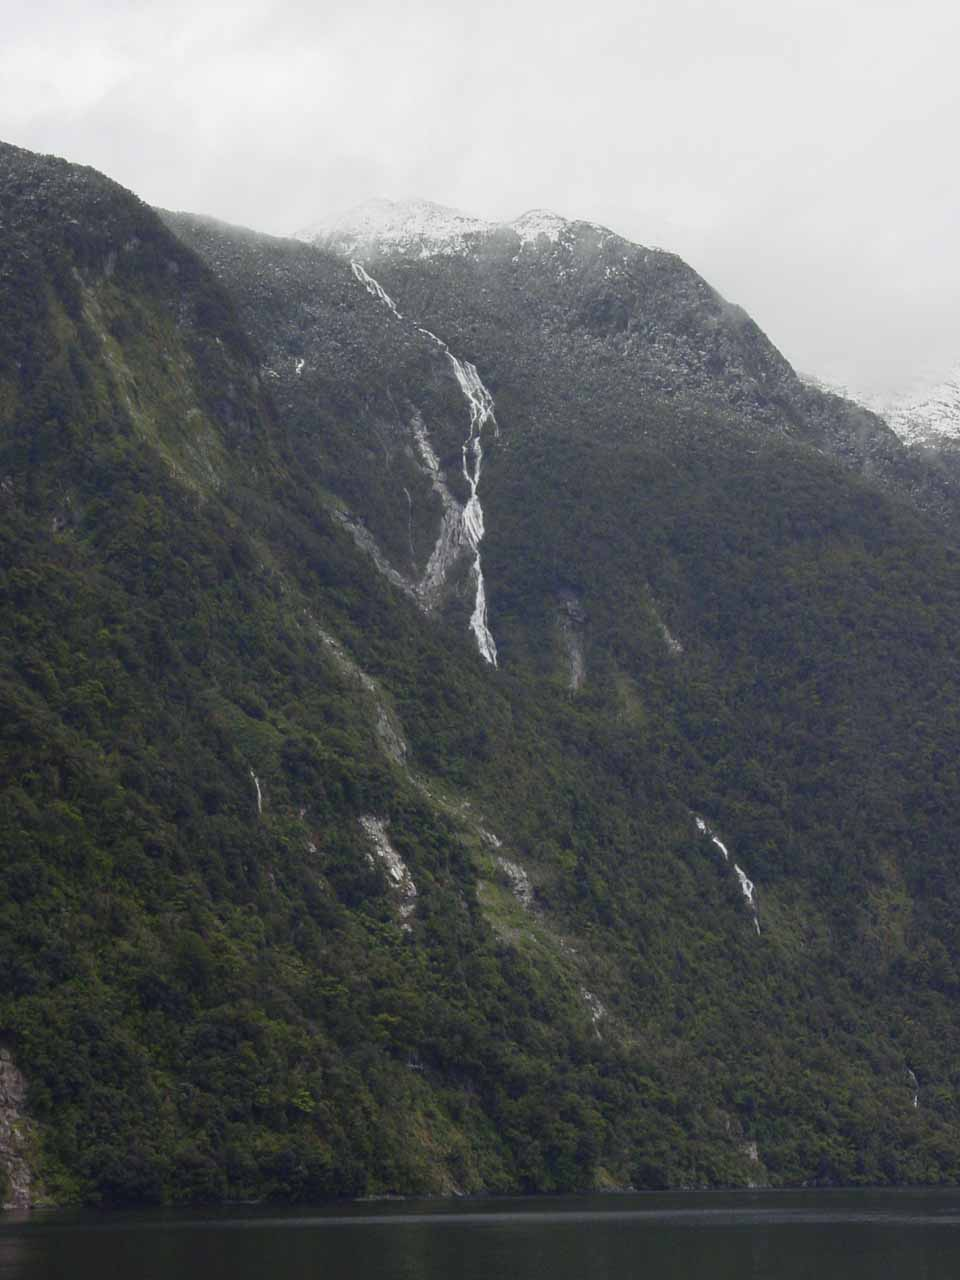 Our first look at Browne Falls as we went deeper into Doubtful Sound